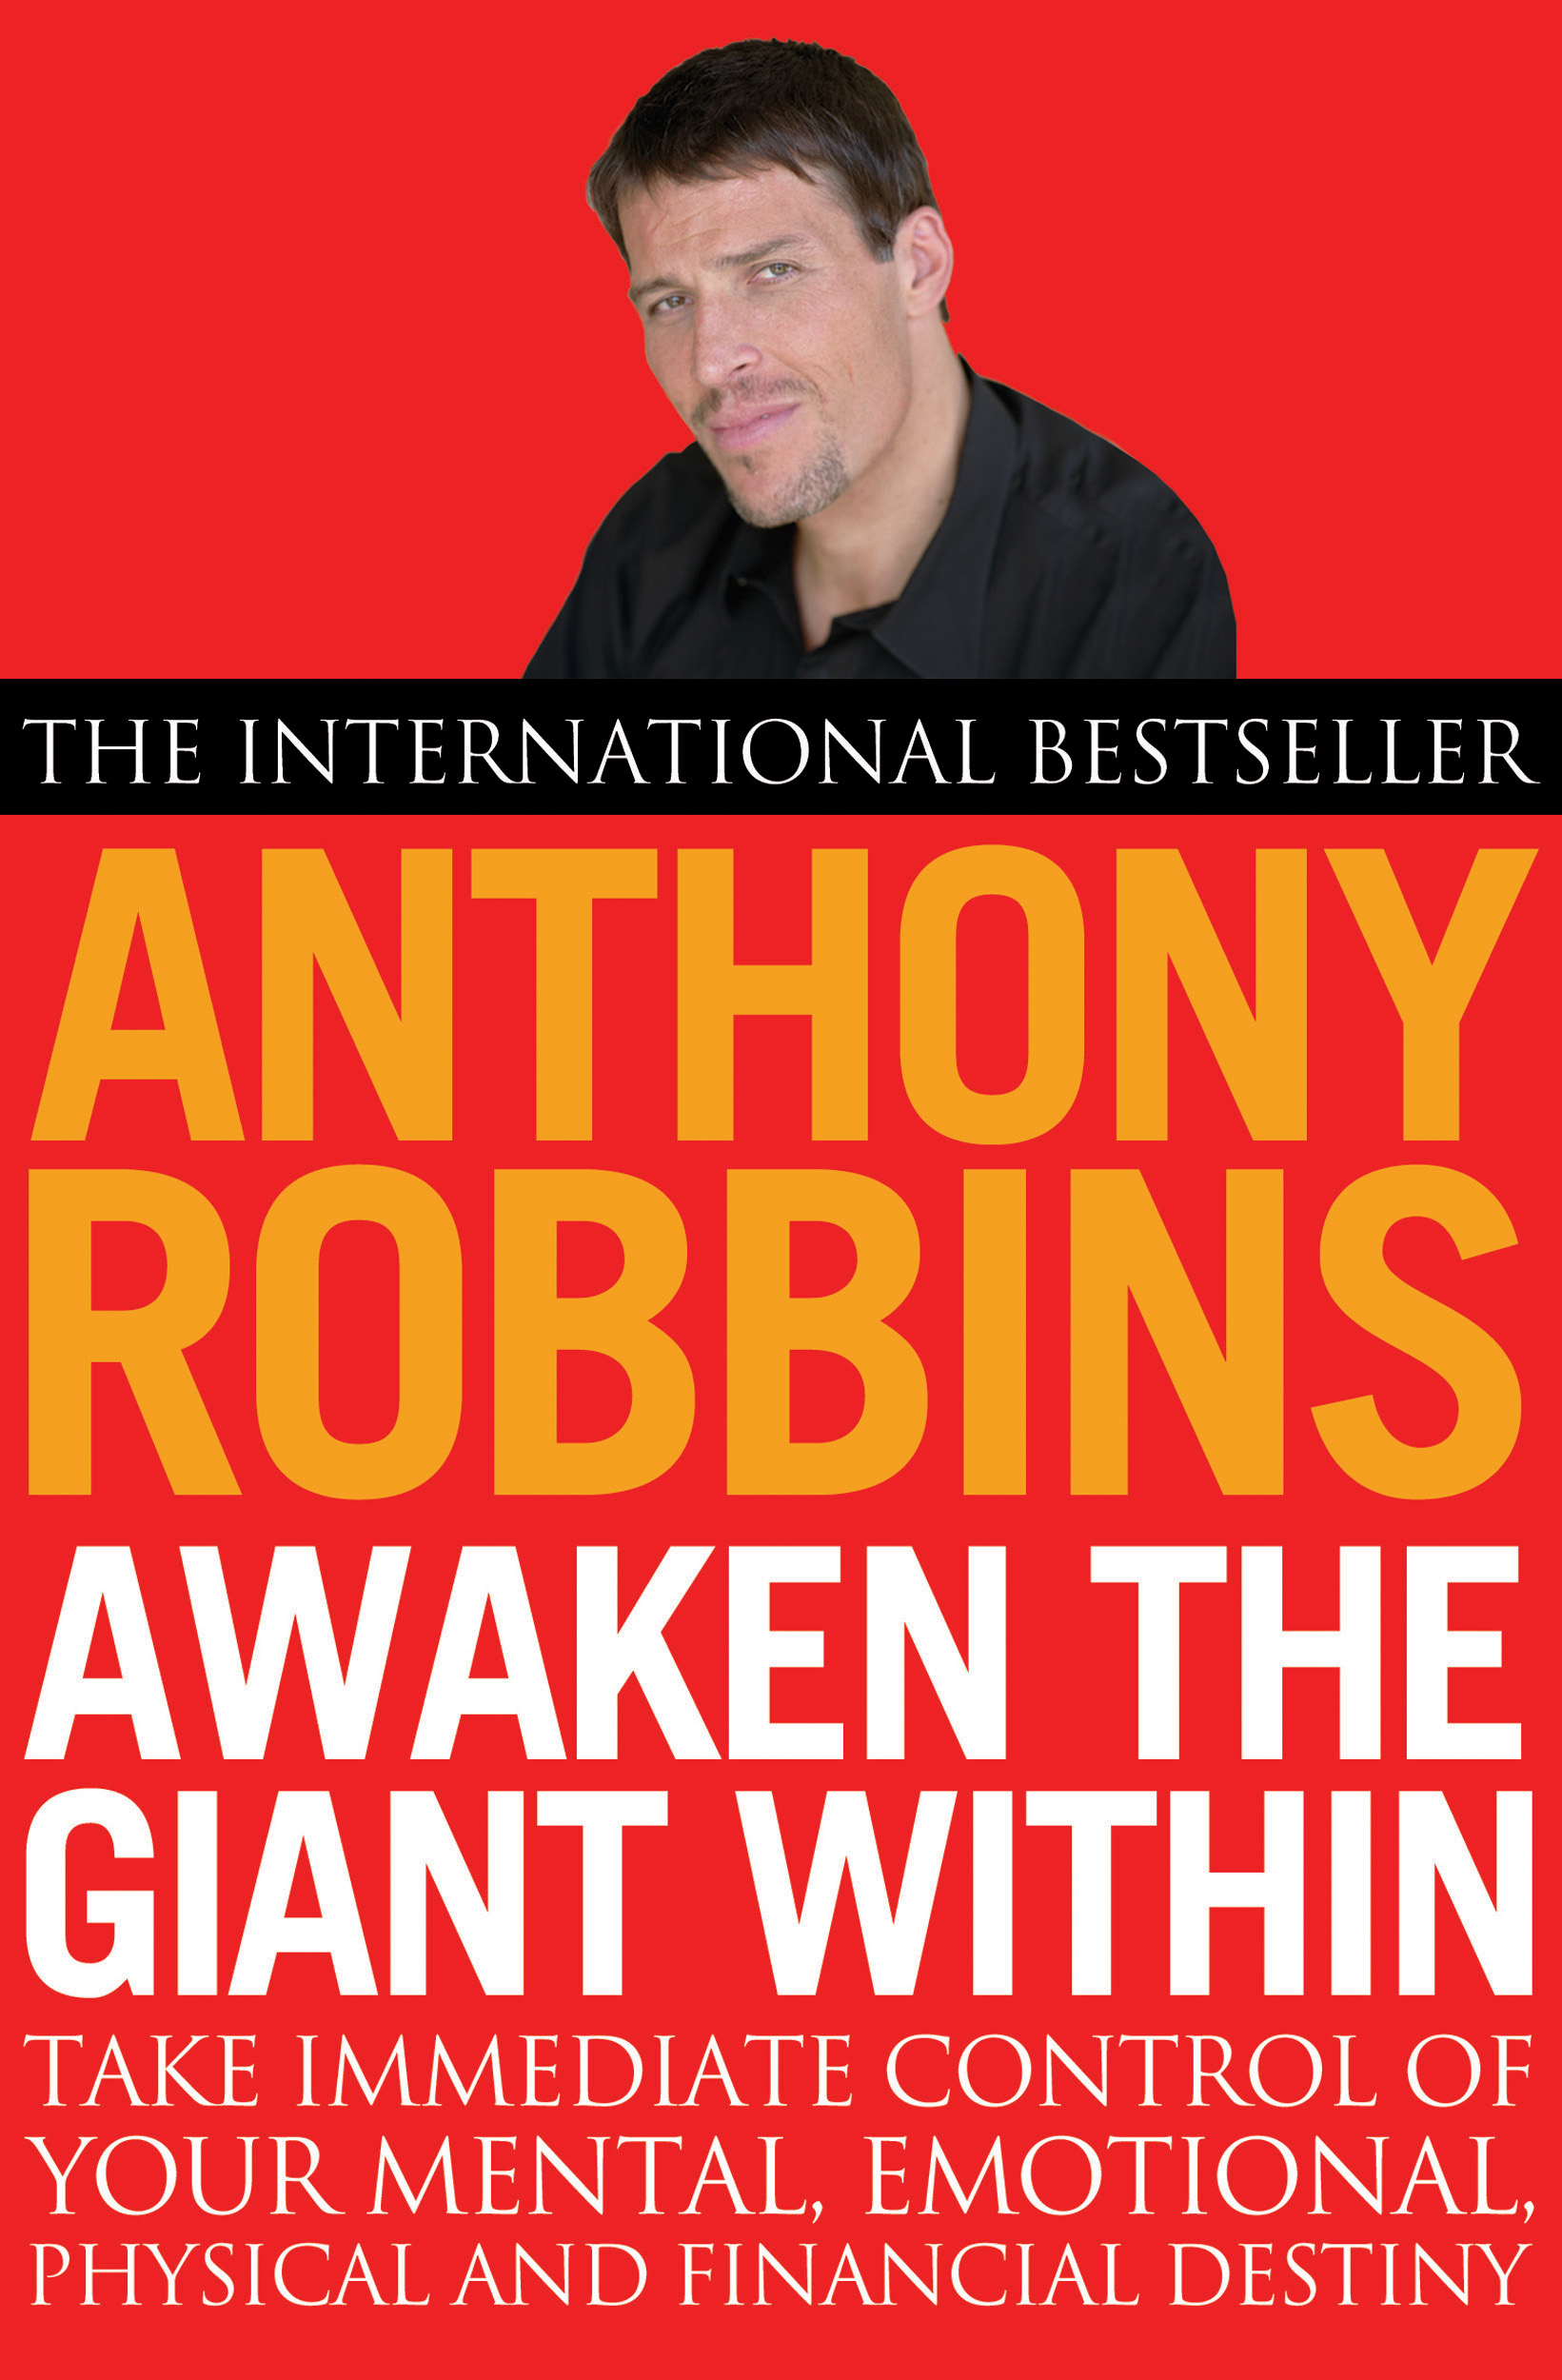 Awaken the giant within by anthony robbins free pdf